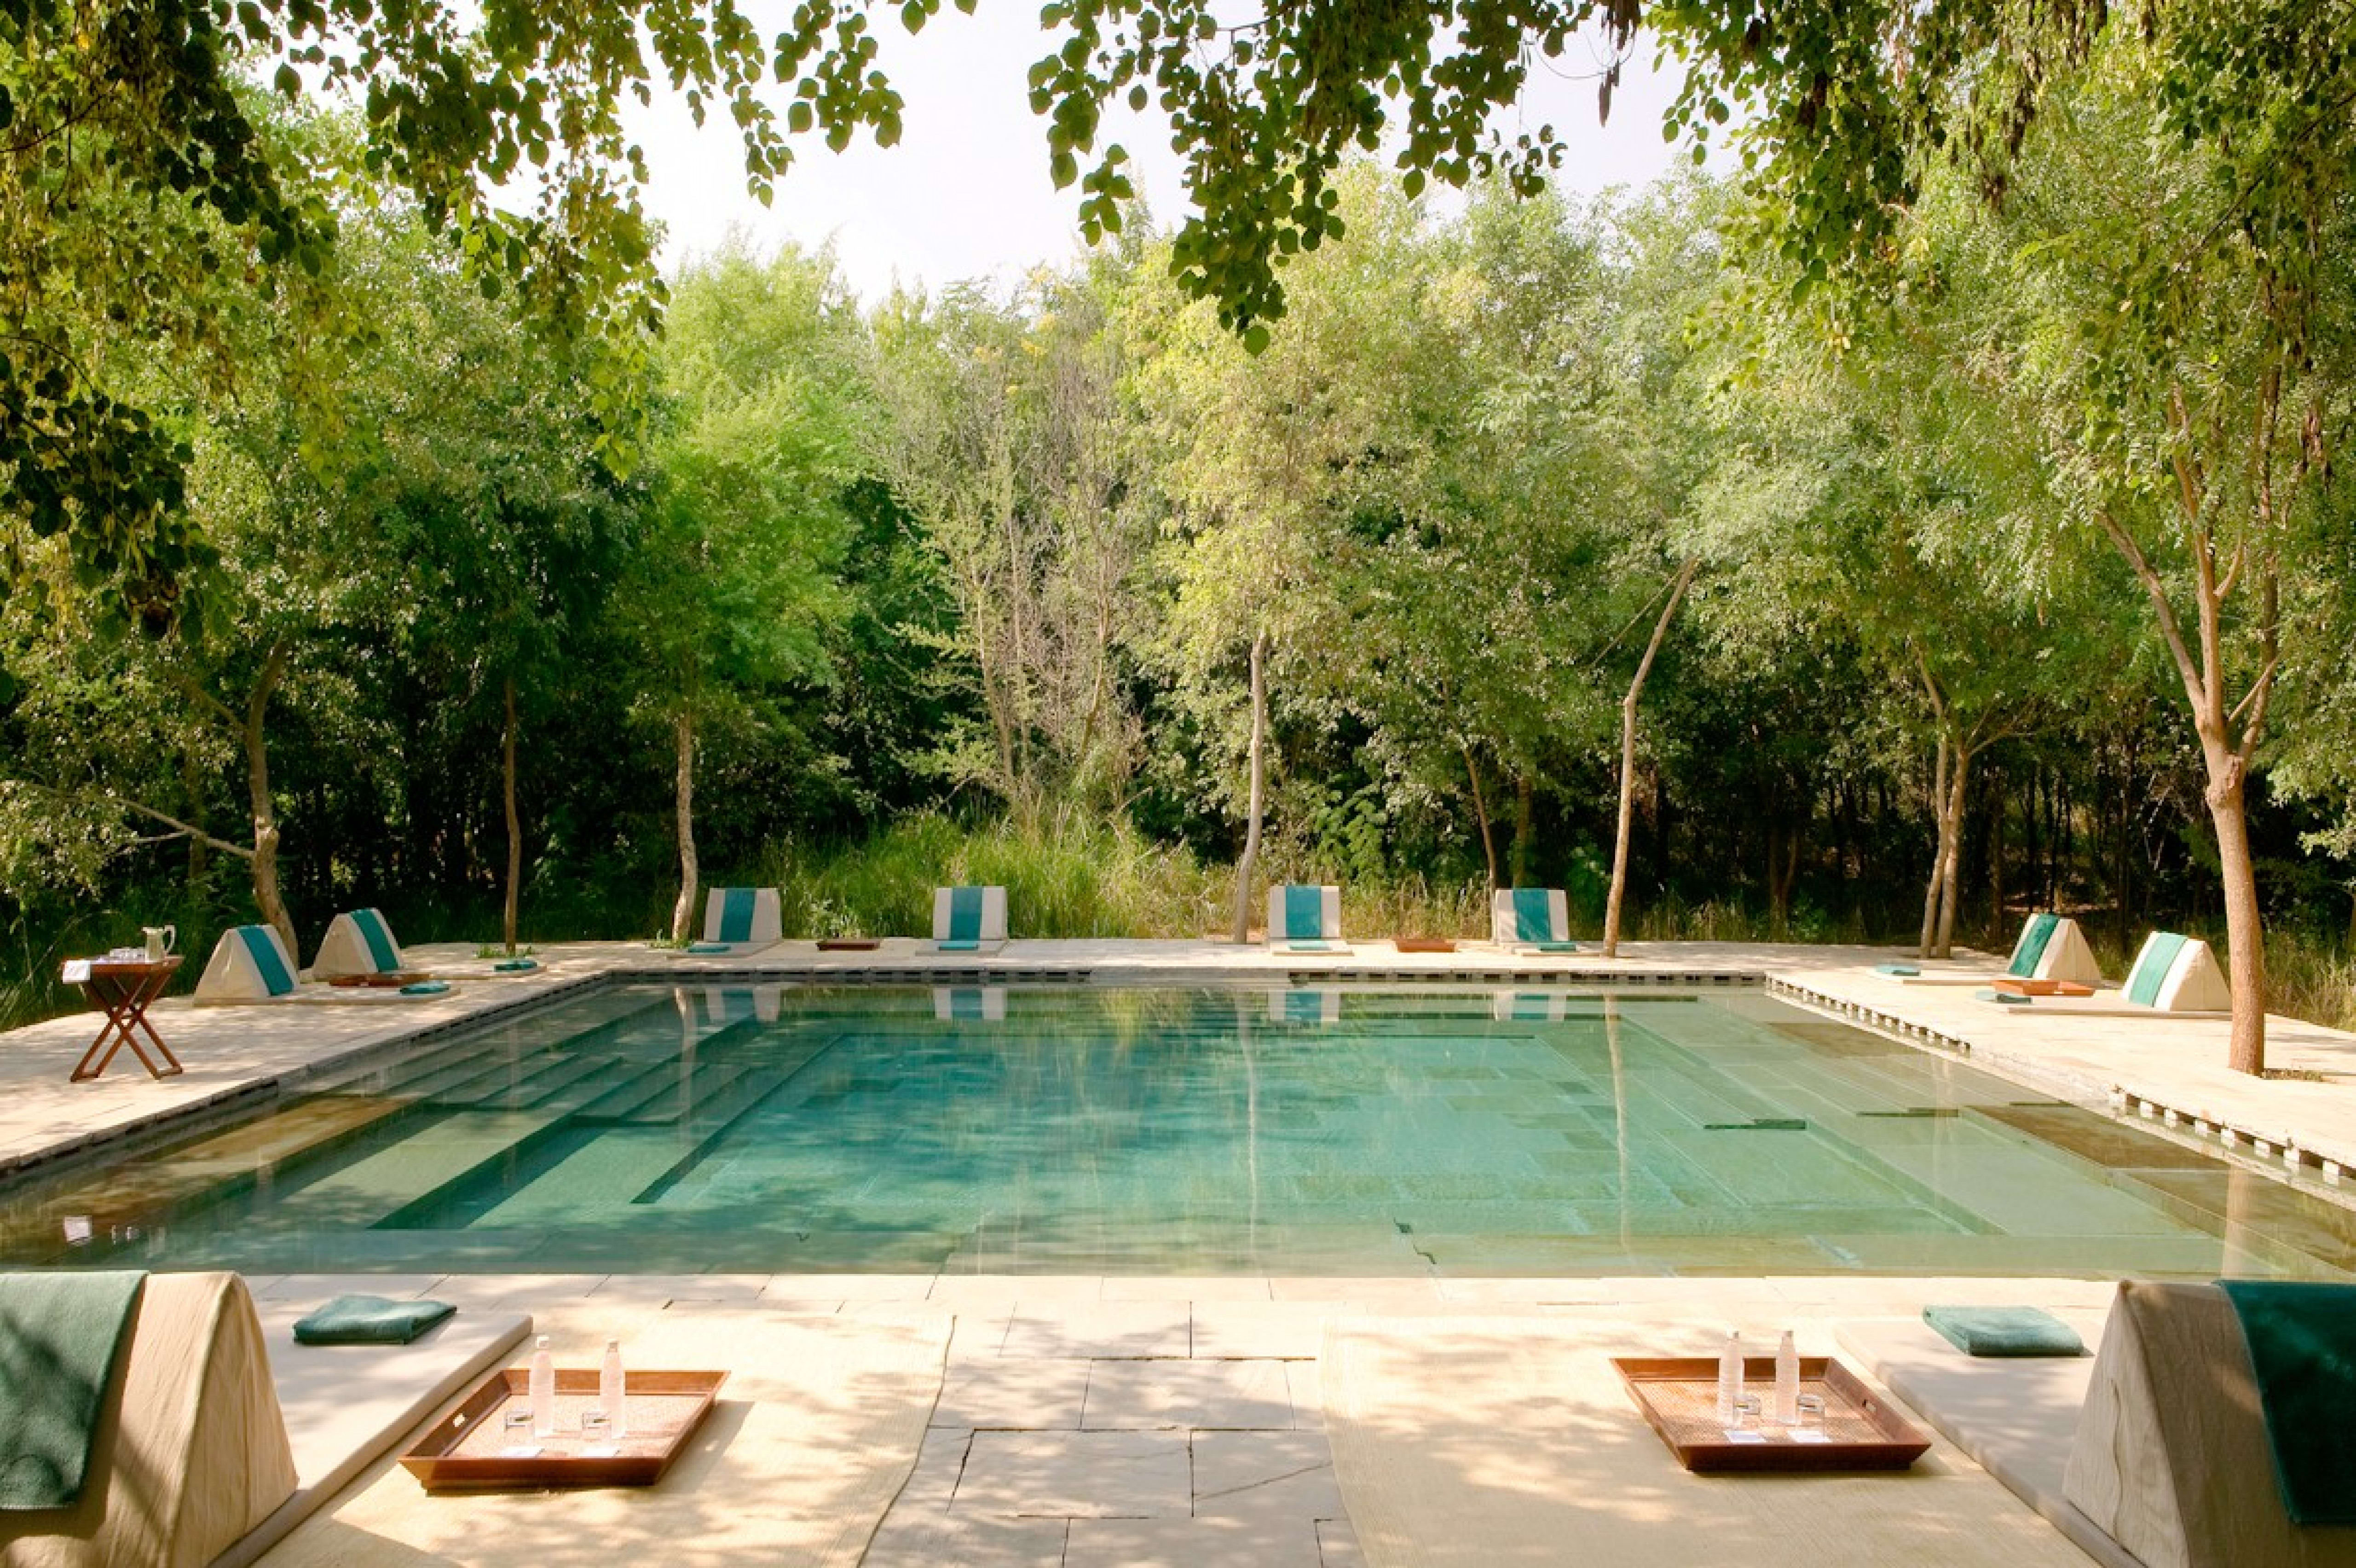 Rejuvenate with your besties after the wedding planning hustle - Bachelorette trip Destinations in India